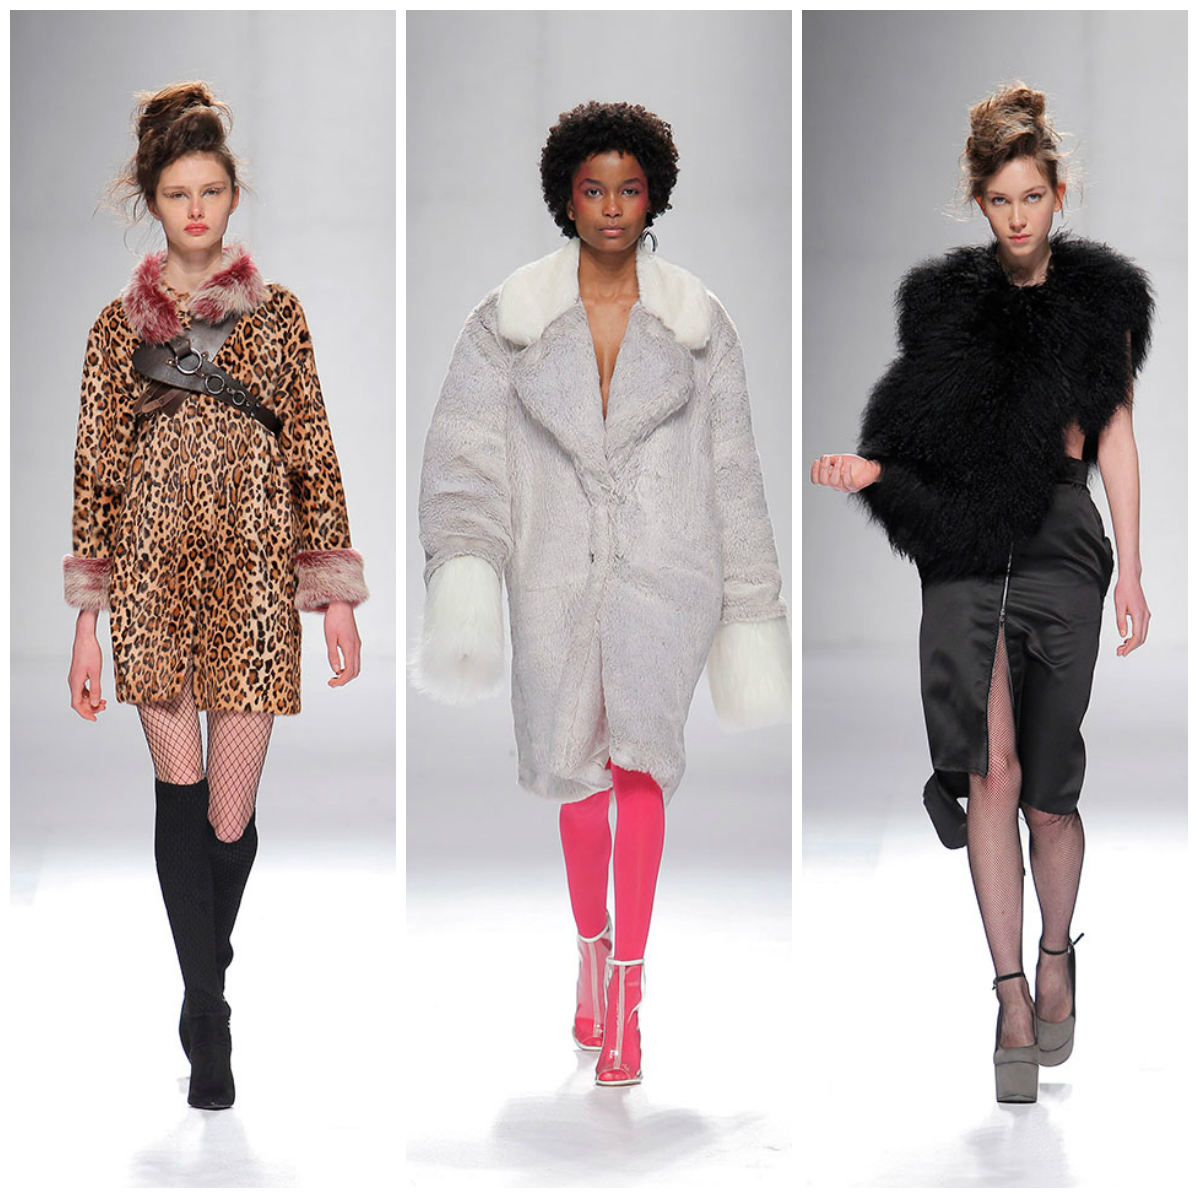 3. Statement faux fur